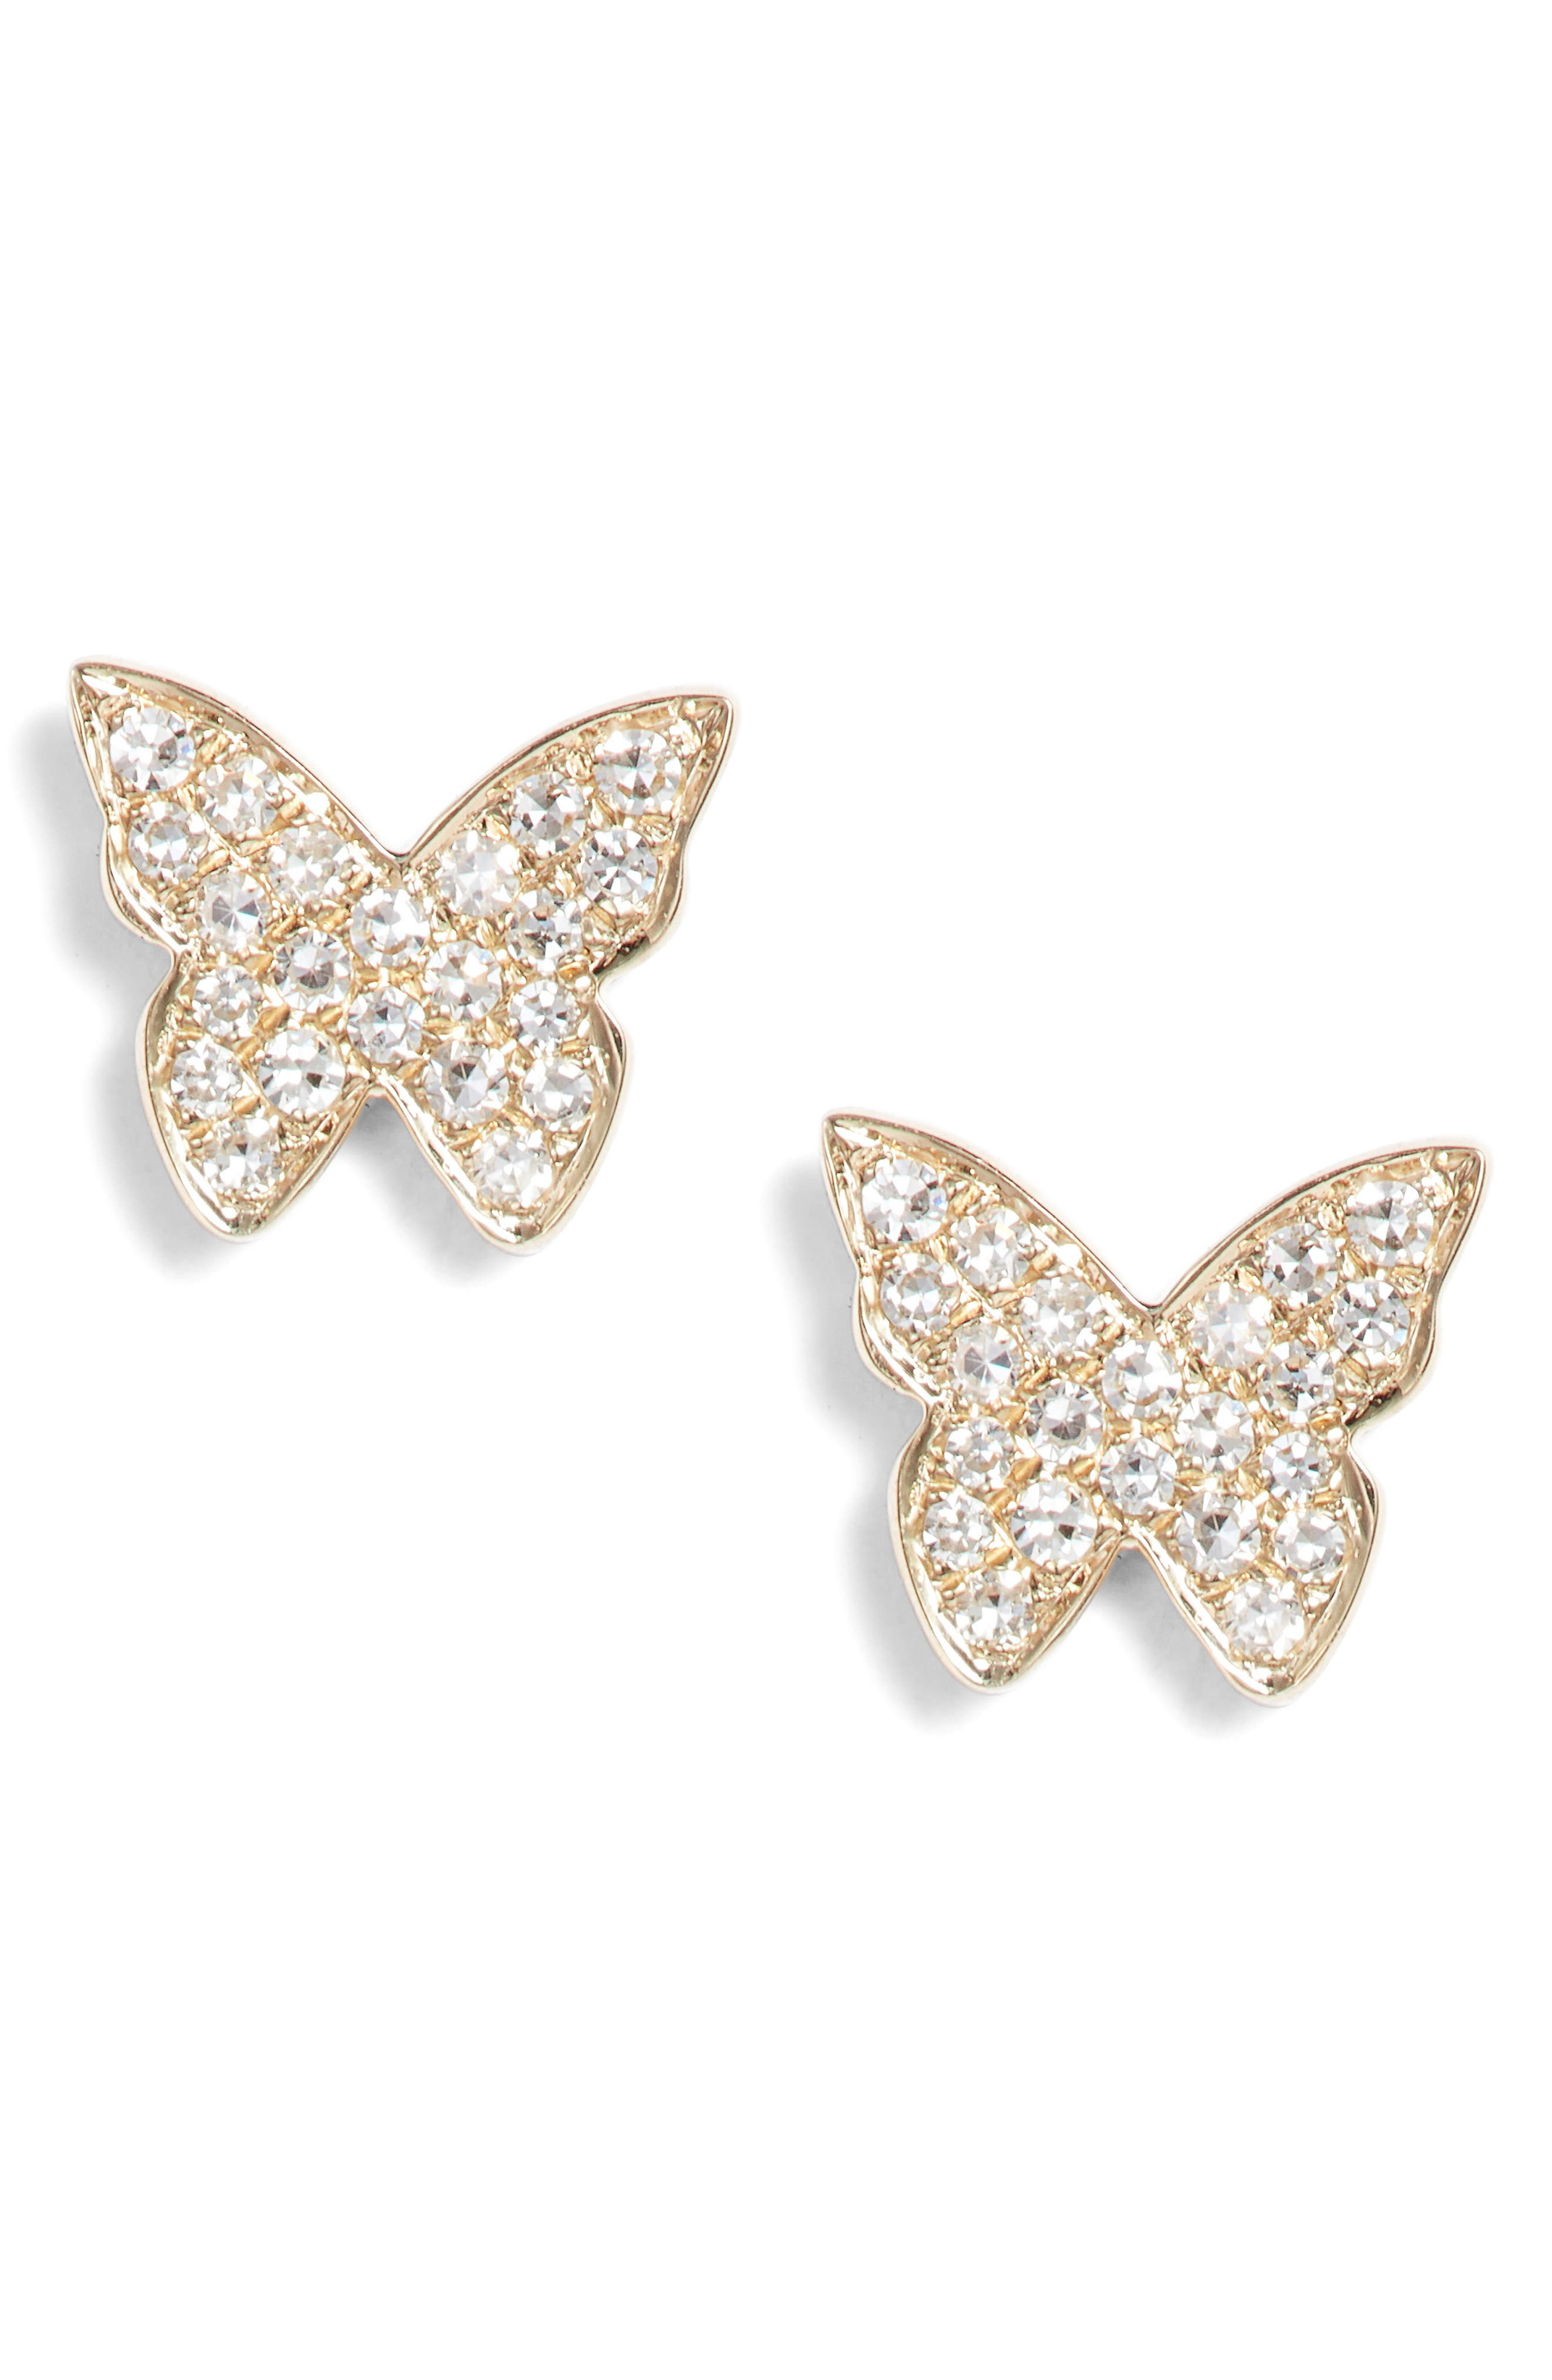 Butterfly Diamond Stud Earrings,                         Main,                         color, YELLOW GOLD